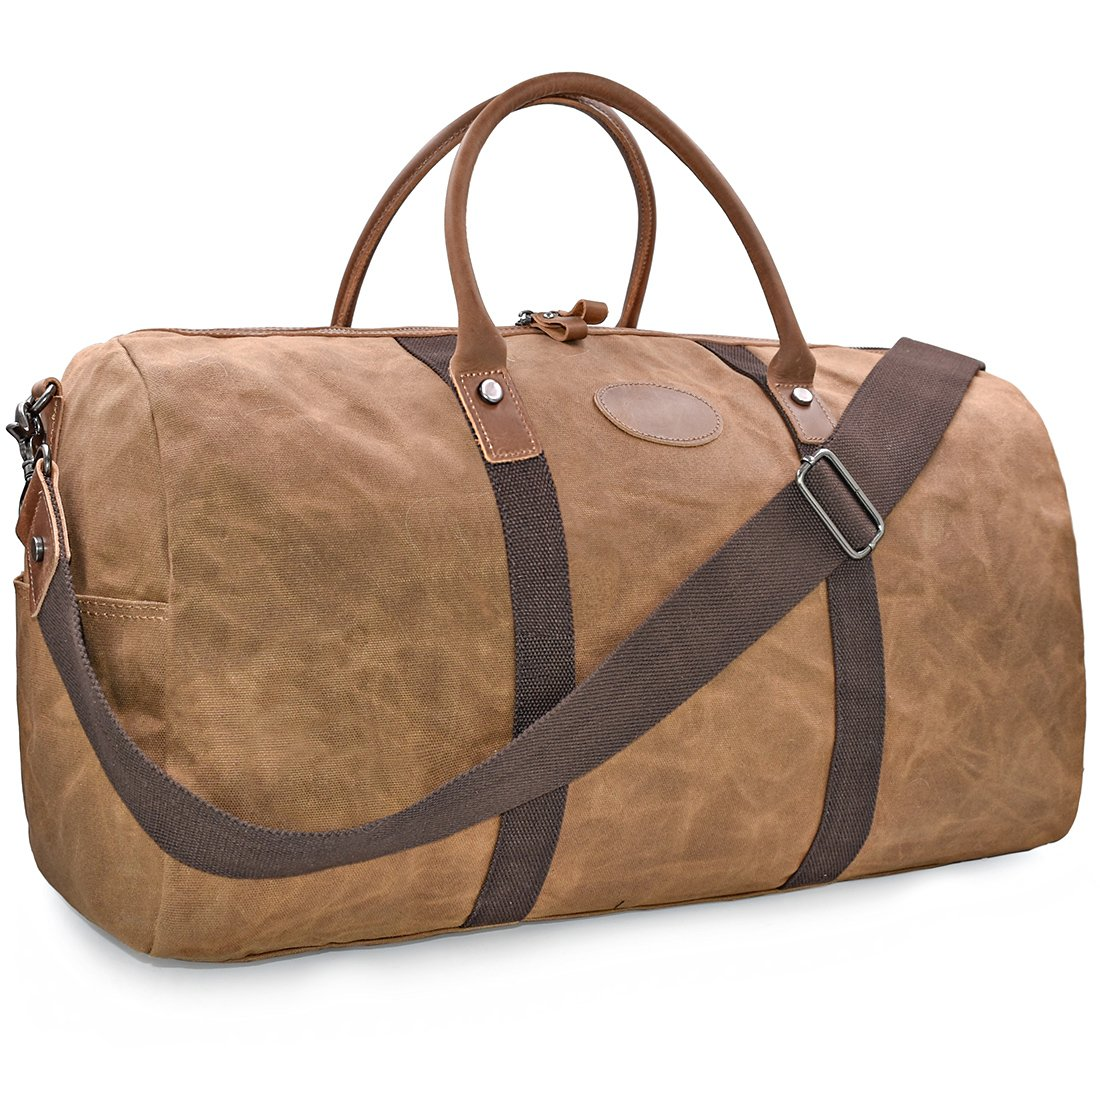 Travel Duffel Bag Waterproof Canvas Overnight Bag Leather Weekend Oversized Carryon Handbag Brown by NEWHEY